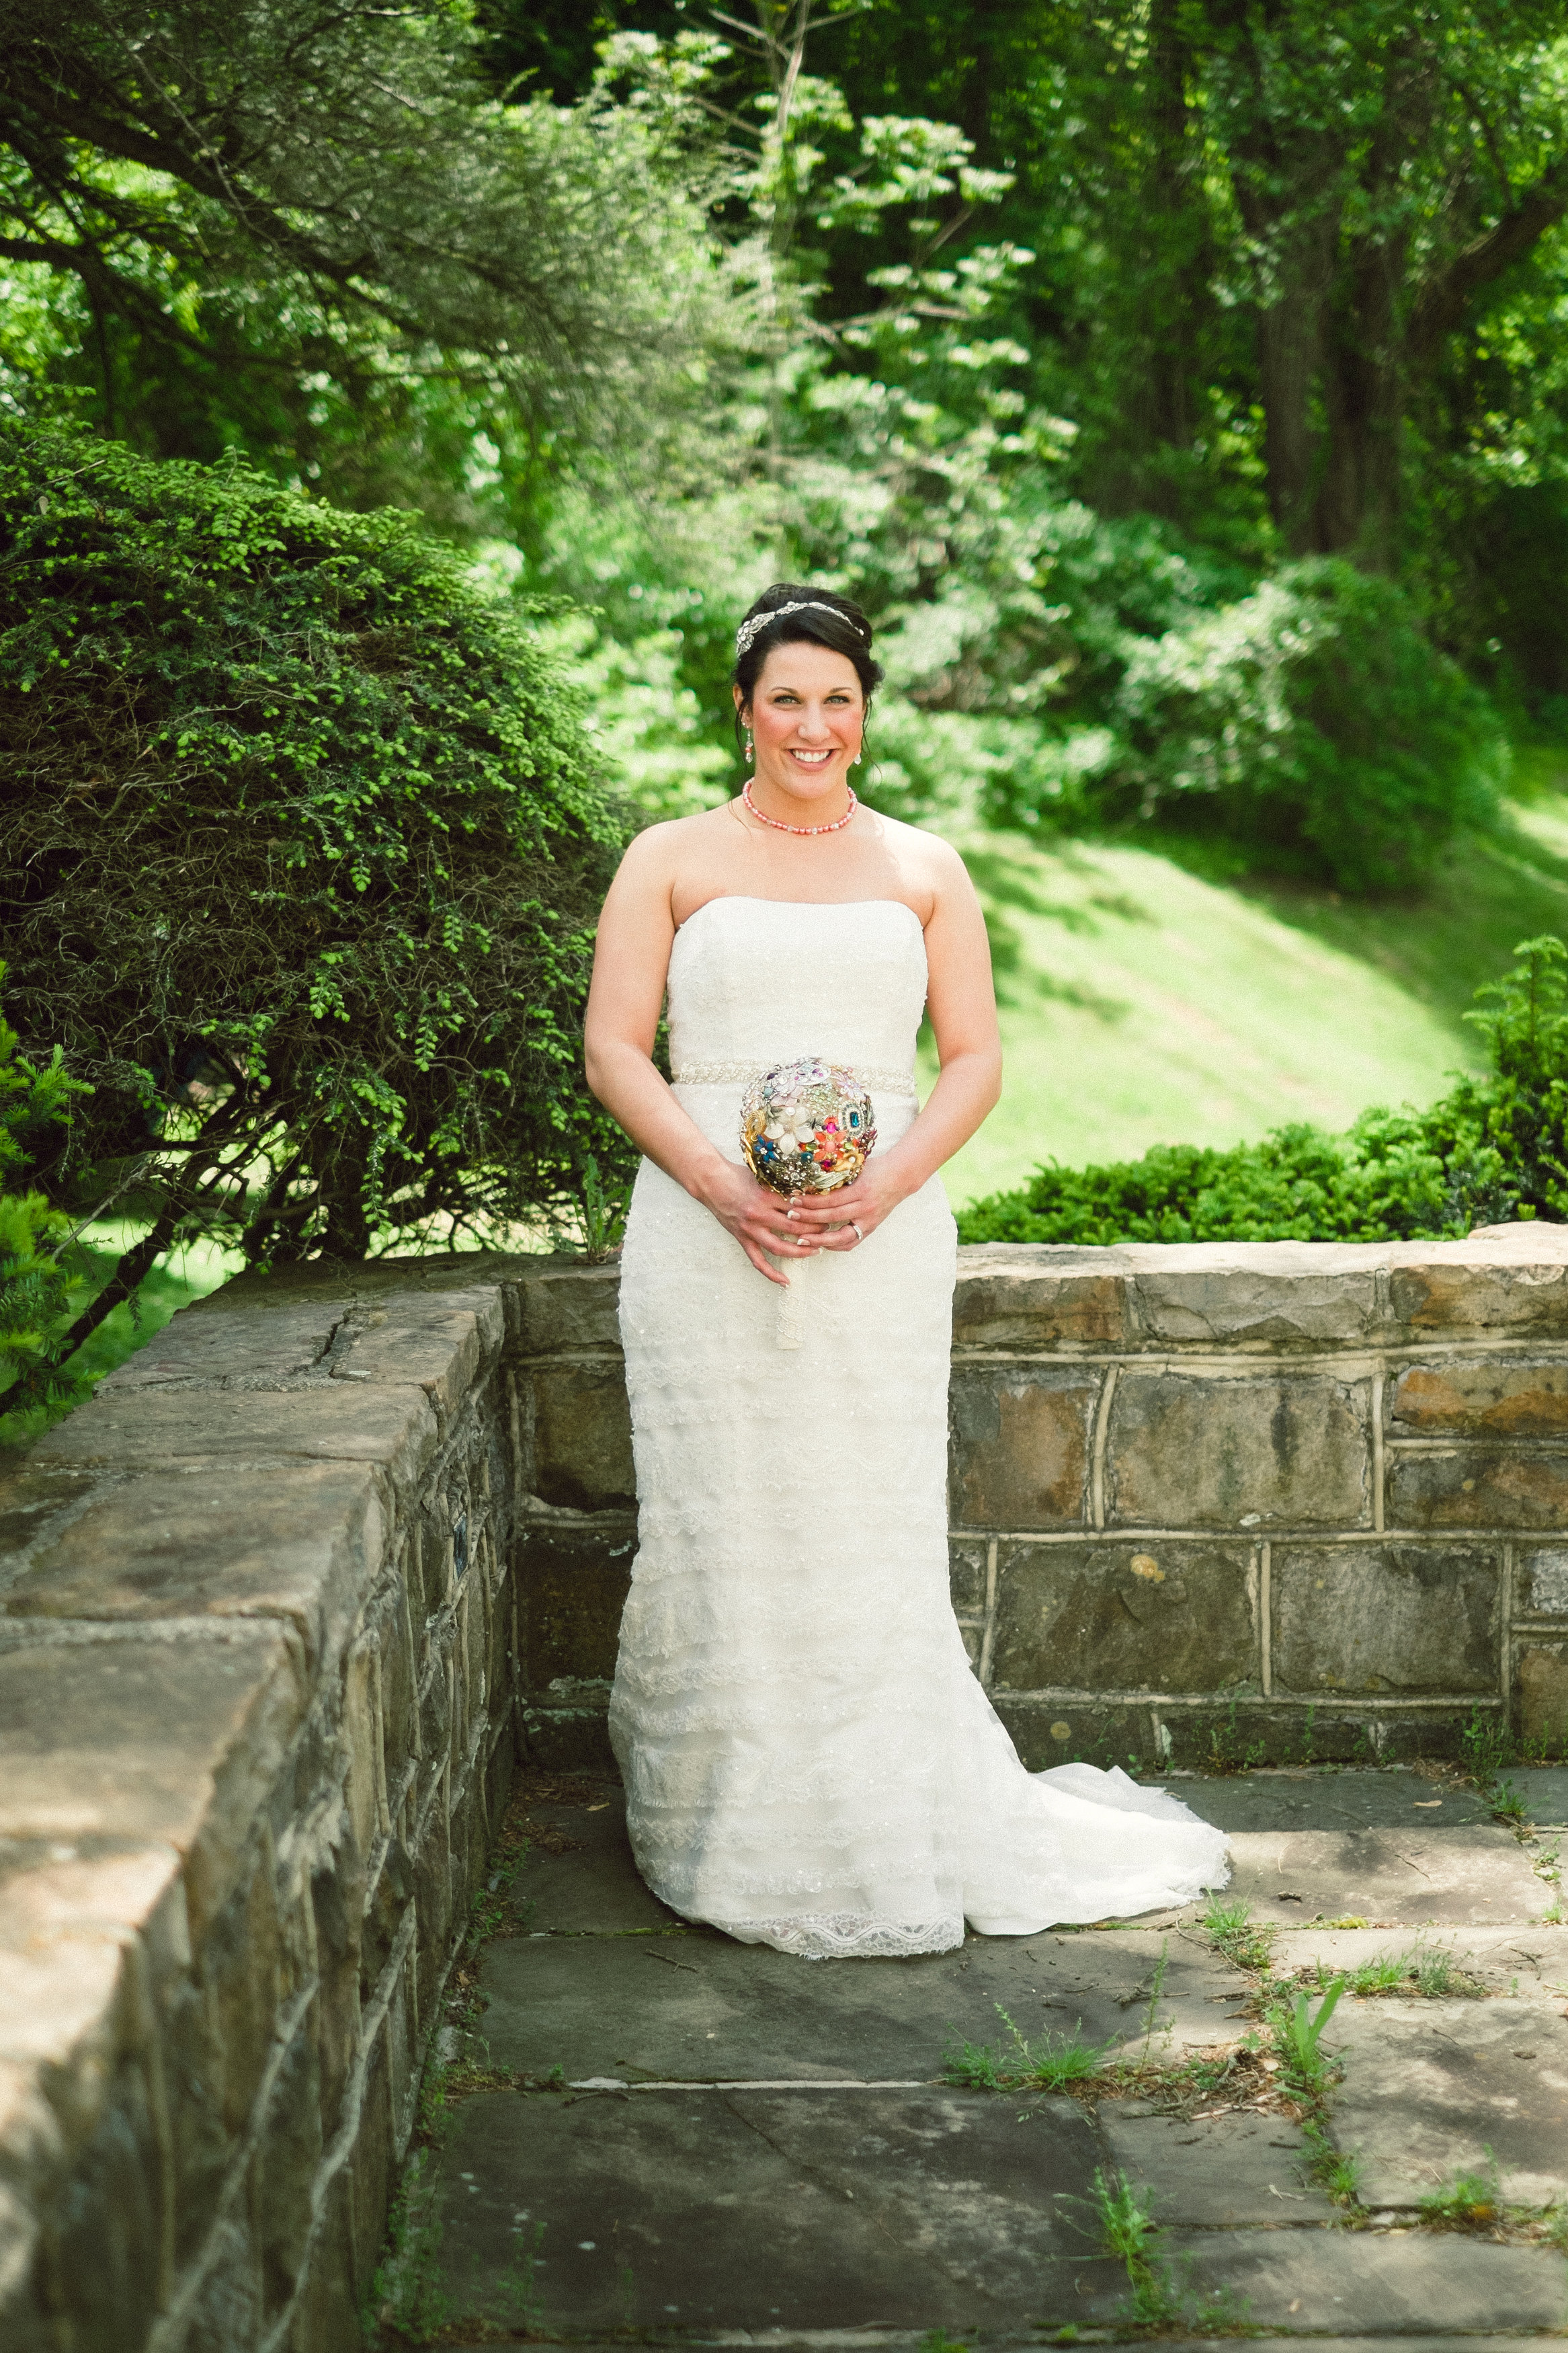 PennsylvaniaWeddingPhotographer-124.jpg